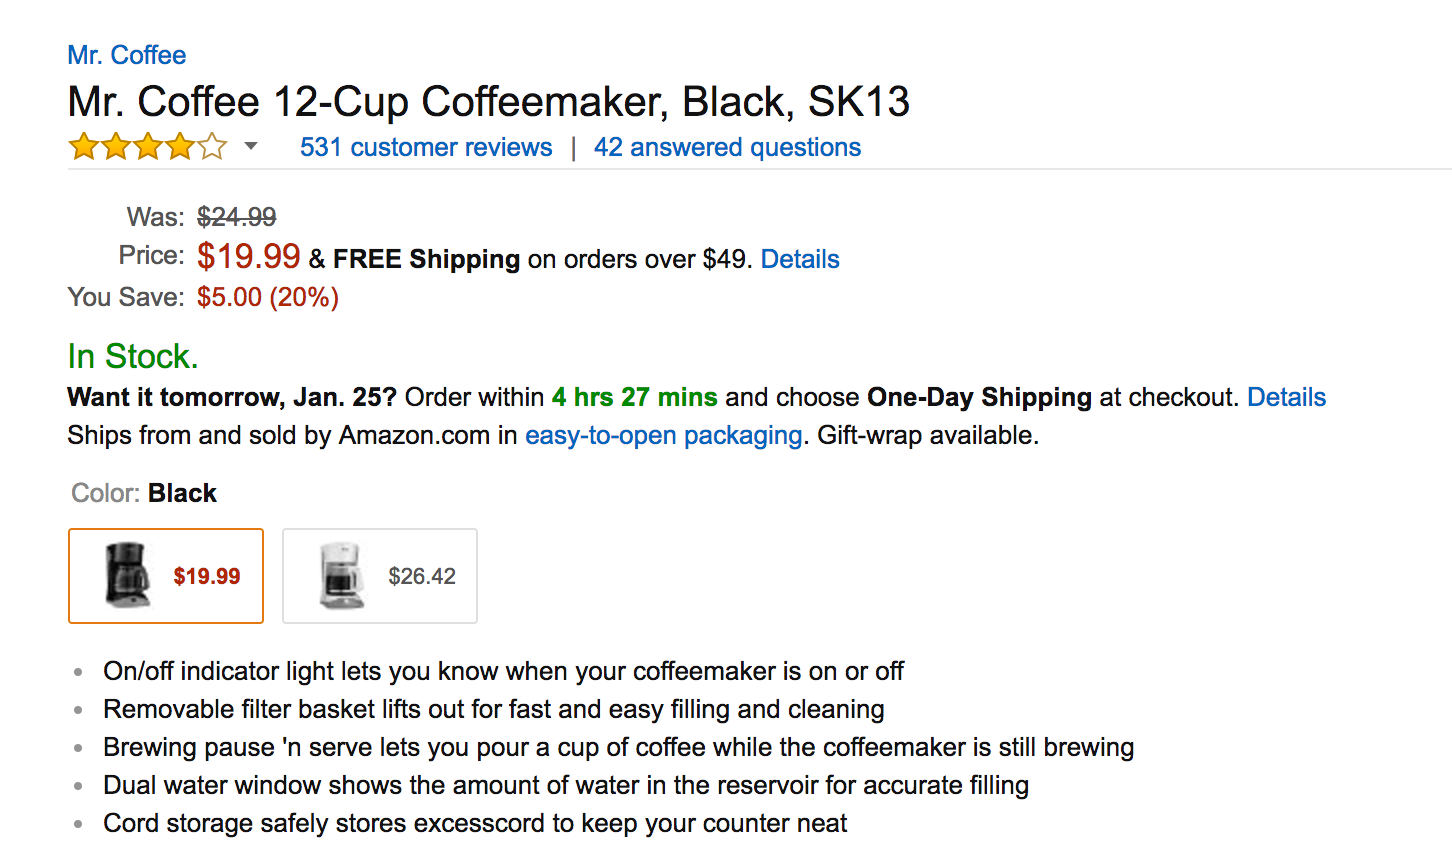 mr-coffee-12-cup-coffeemaker-in-black-sk13-2